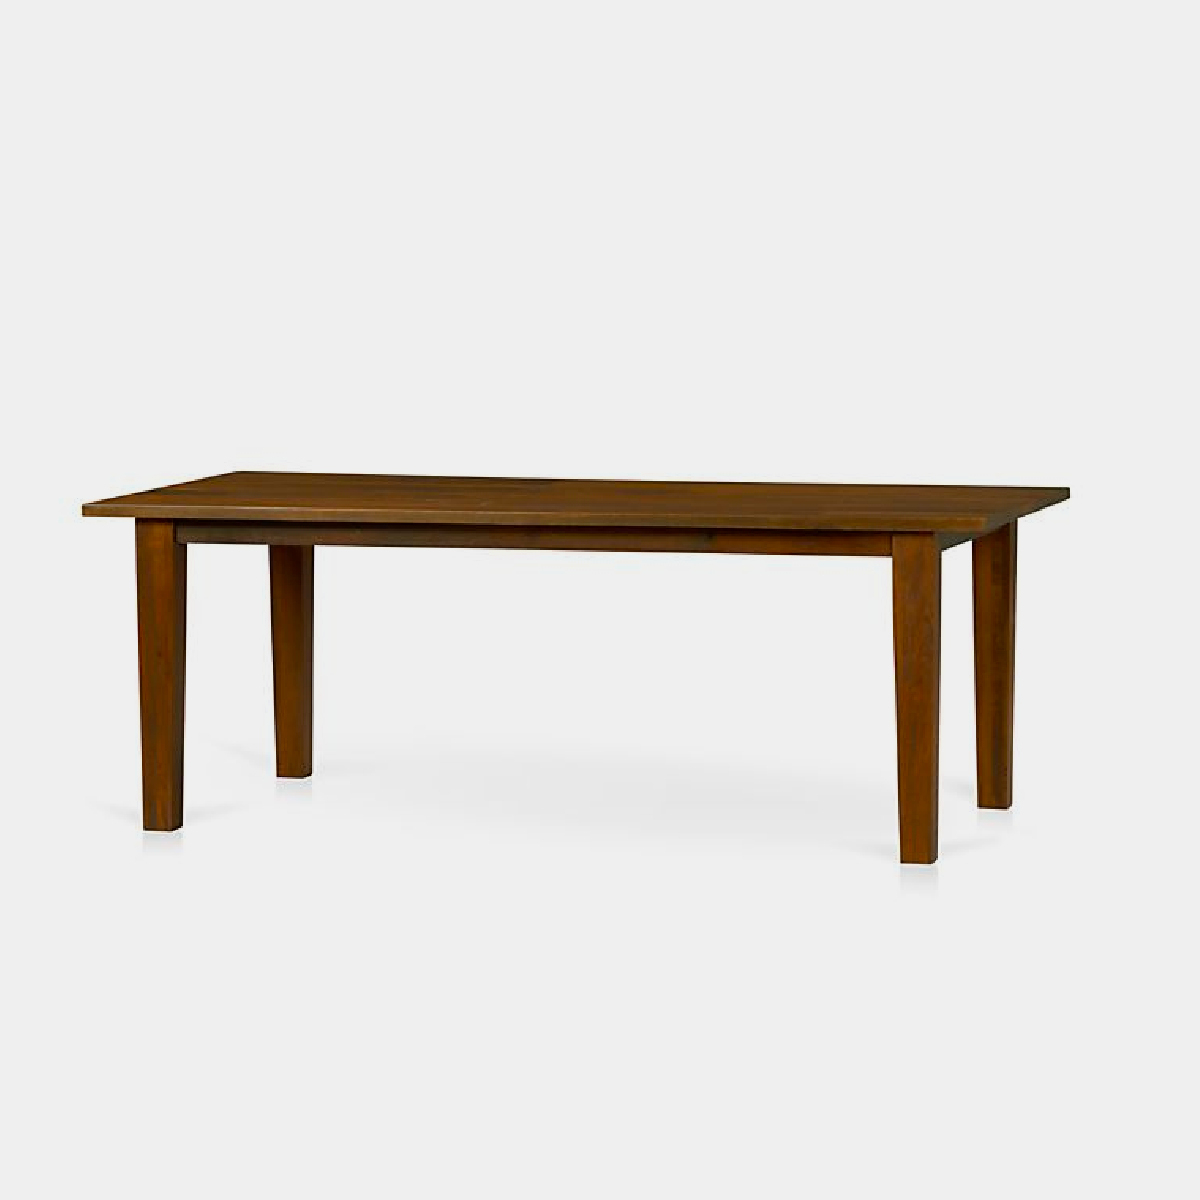 All Sorts Of Regarding Most Up To Date Hearst Oak Wood Dining Tables (View 3 of 25)